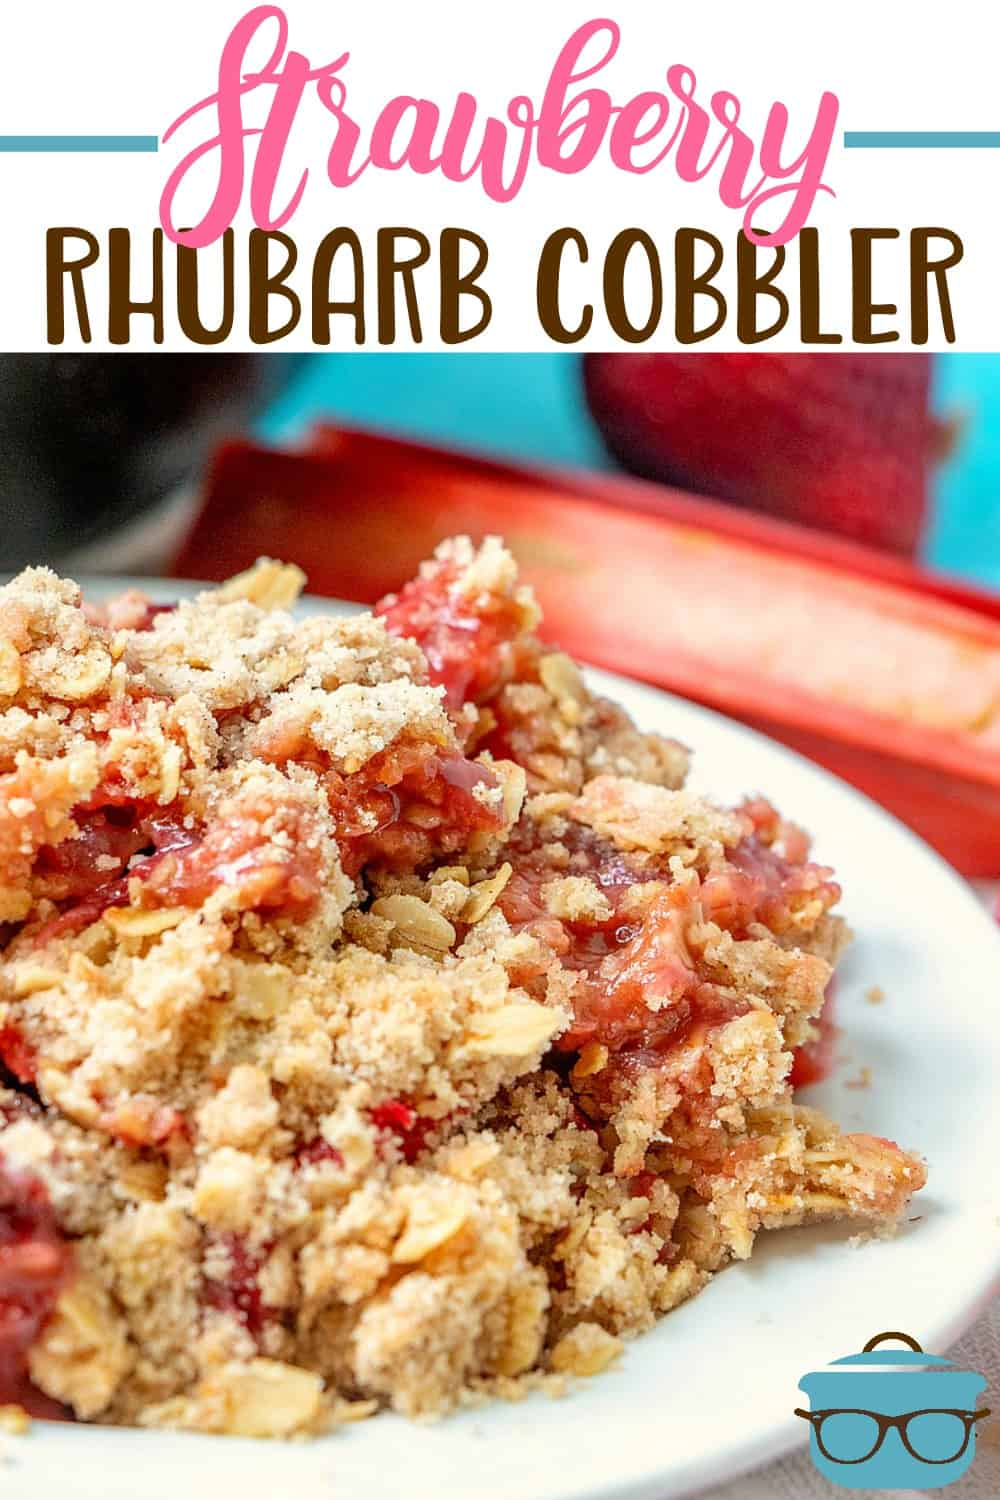 Strawberry Rhubarb Cobbler recipe from The Country Cook. Closeup photo of strawberry rhubarb cobbler serving on a white round plate.